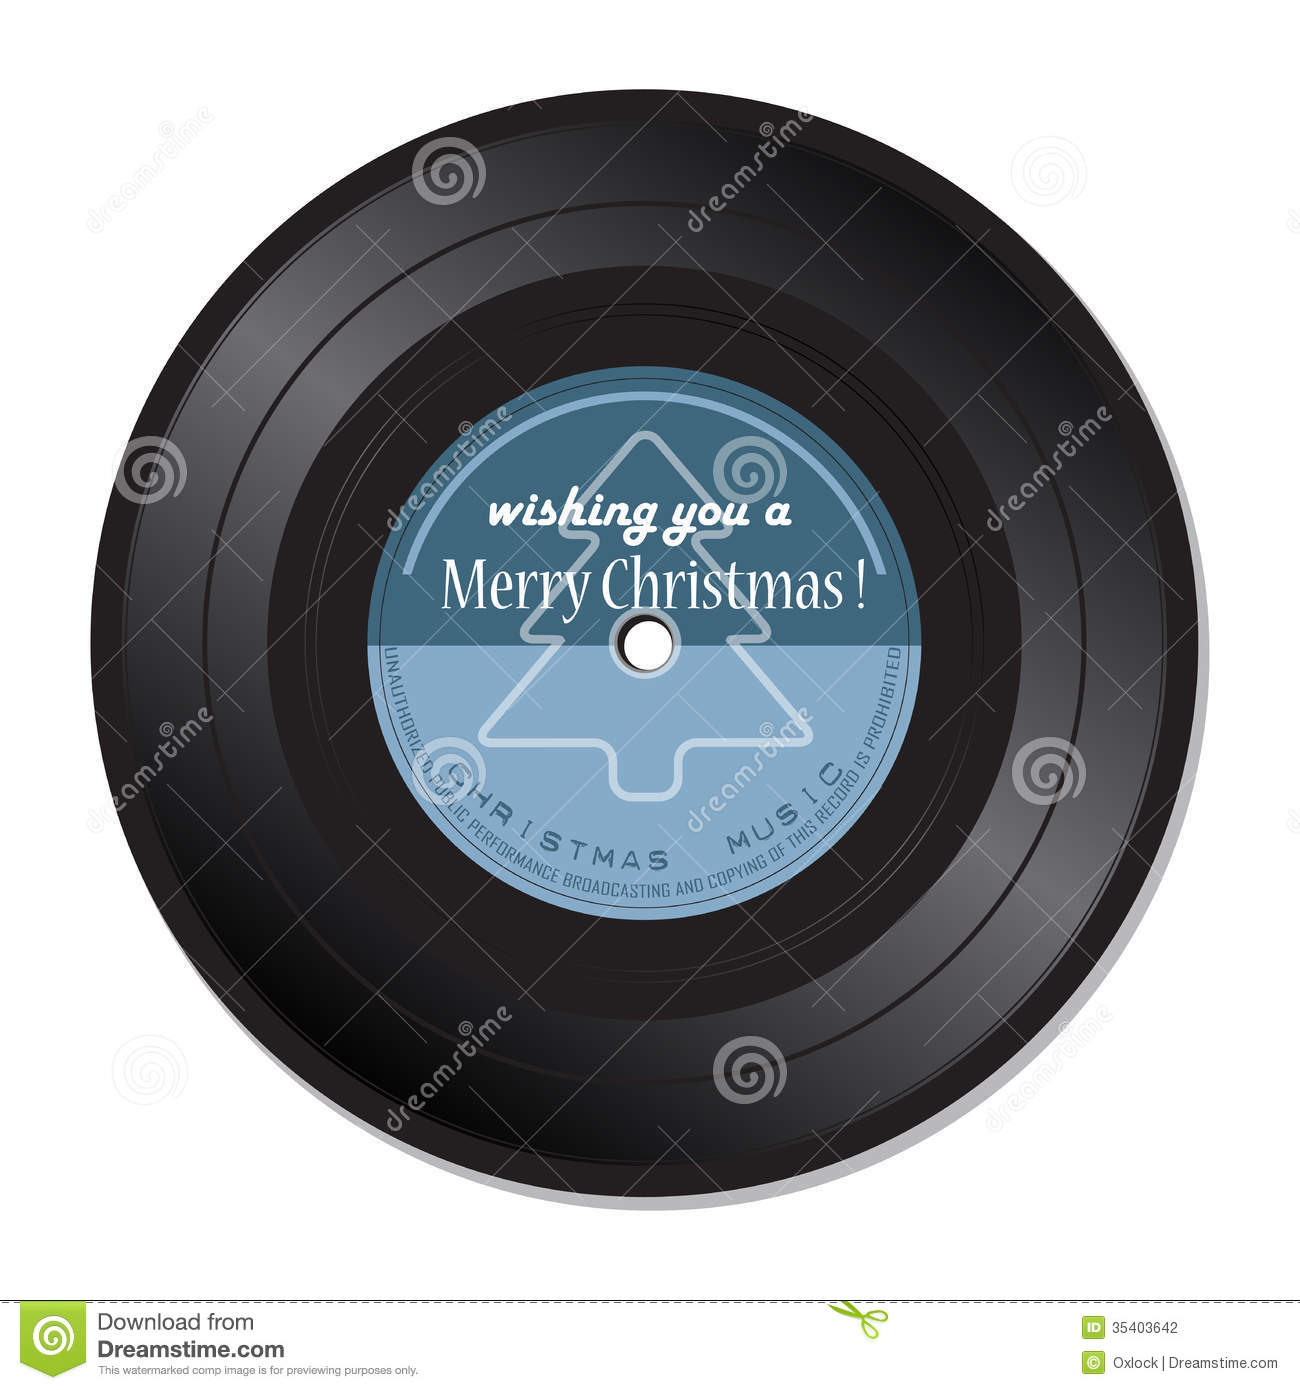 Free vector graphic jukebox music music player free image on - Vinyl Record With Christmas Music Stock Photography